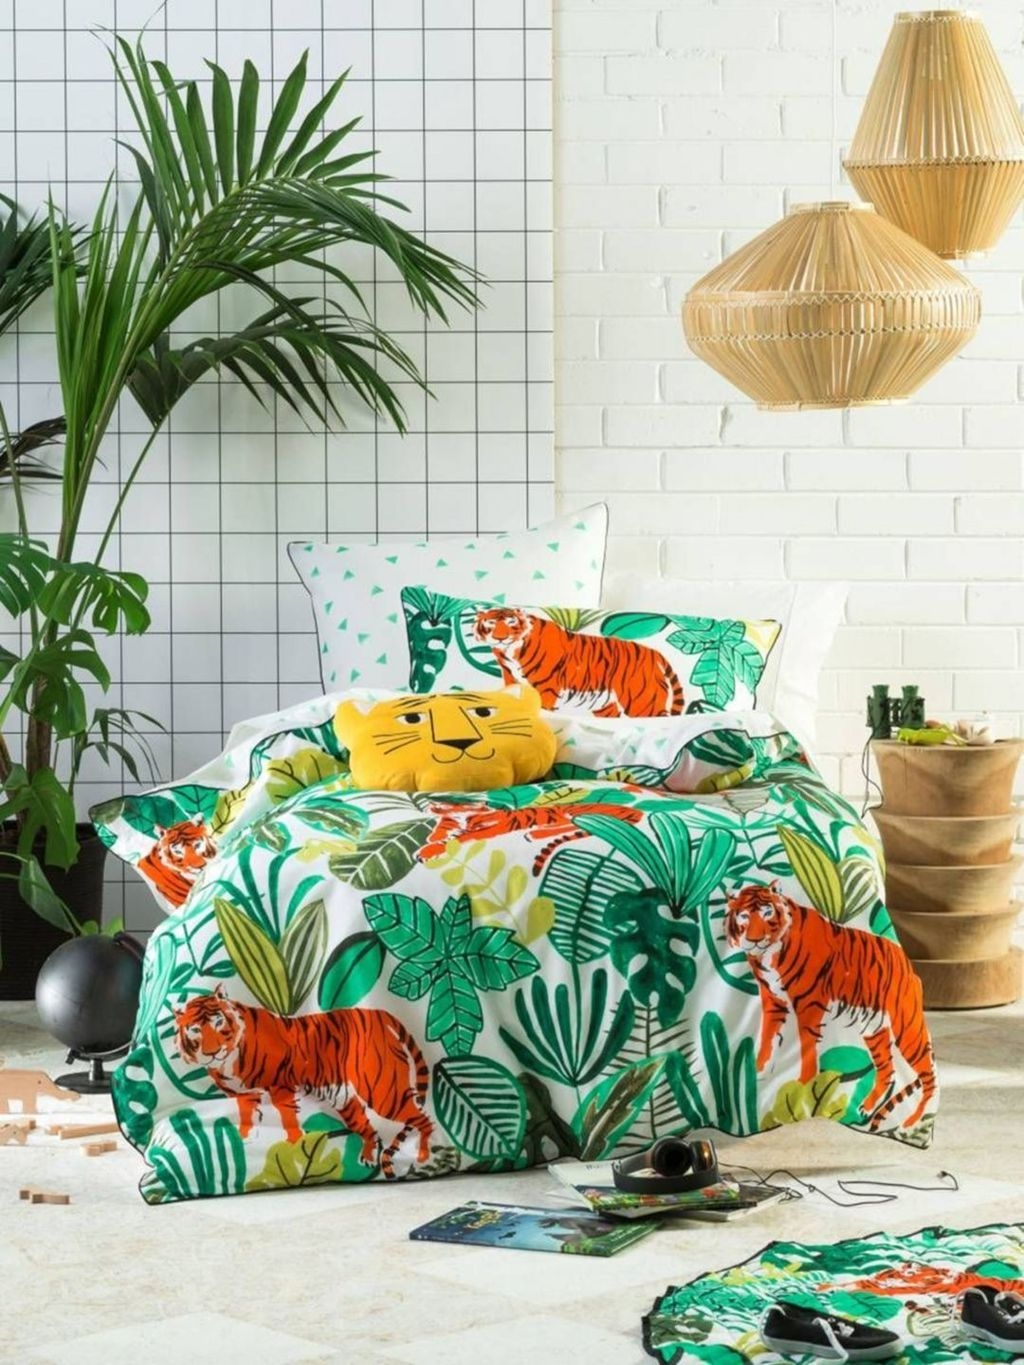 Charming Kids Bedroom Ideas With Jungle Theme To Try23